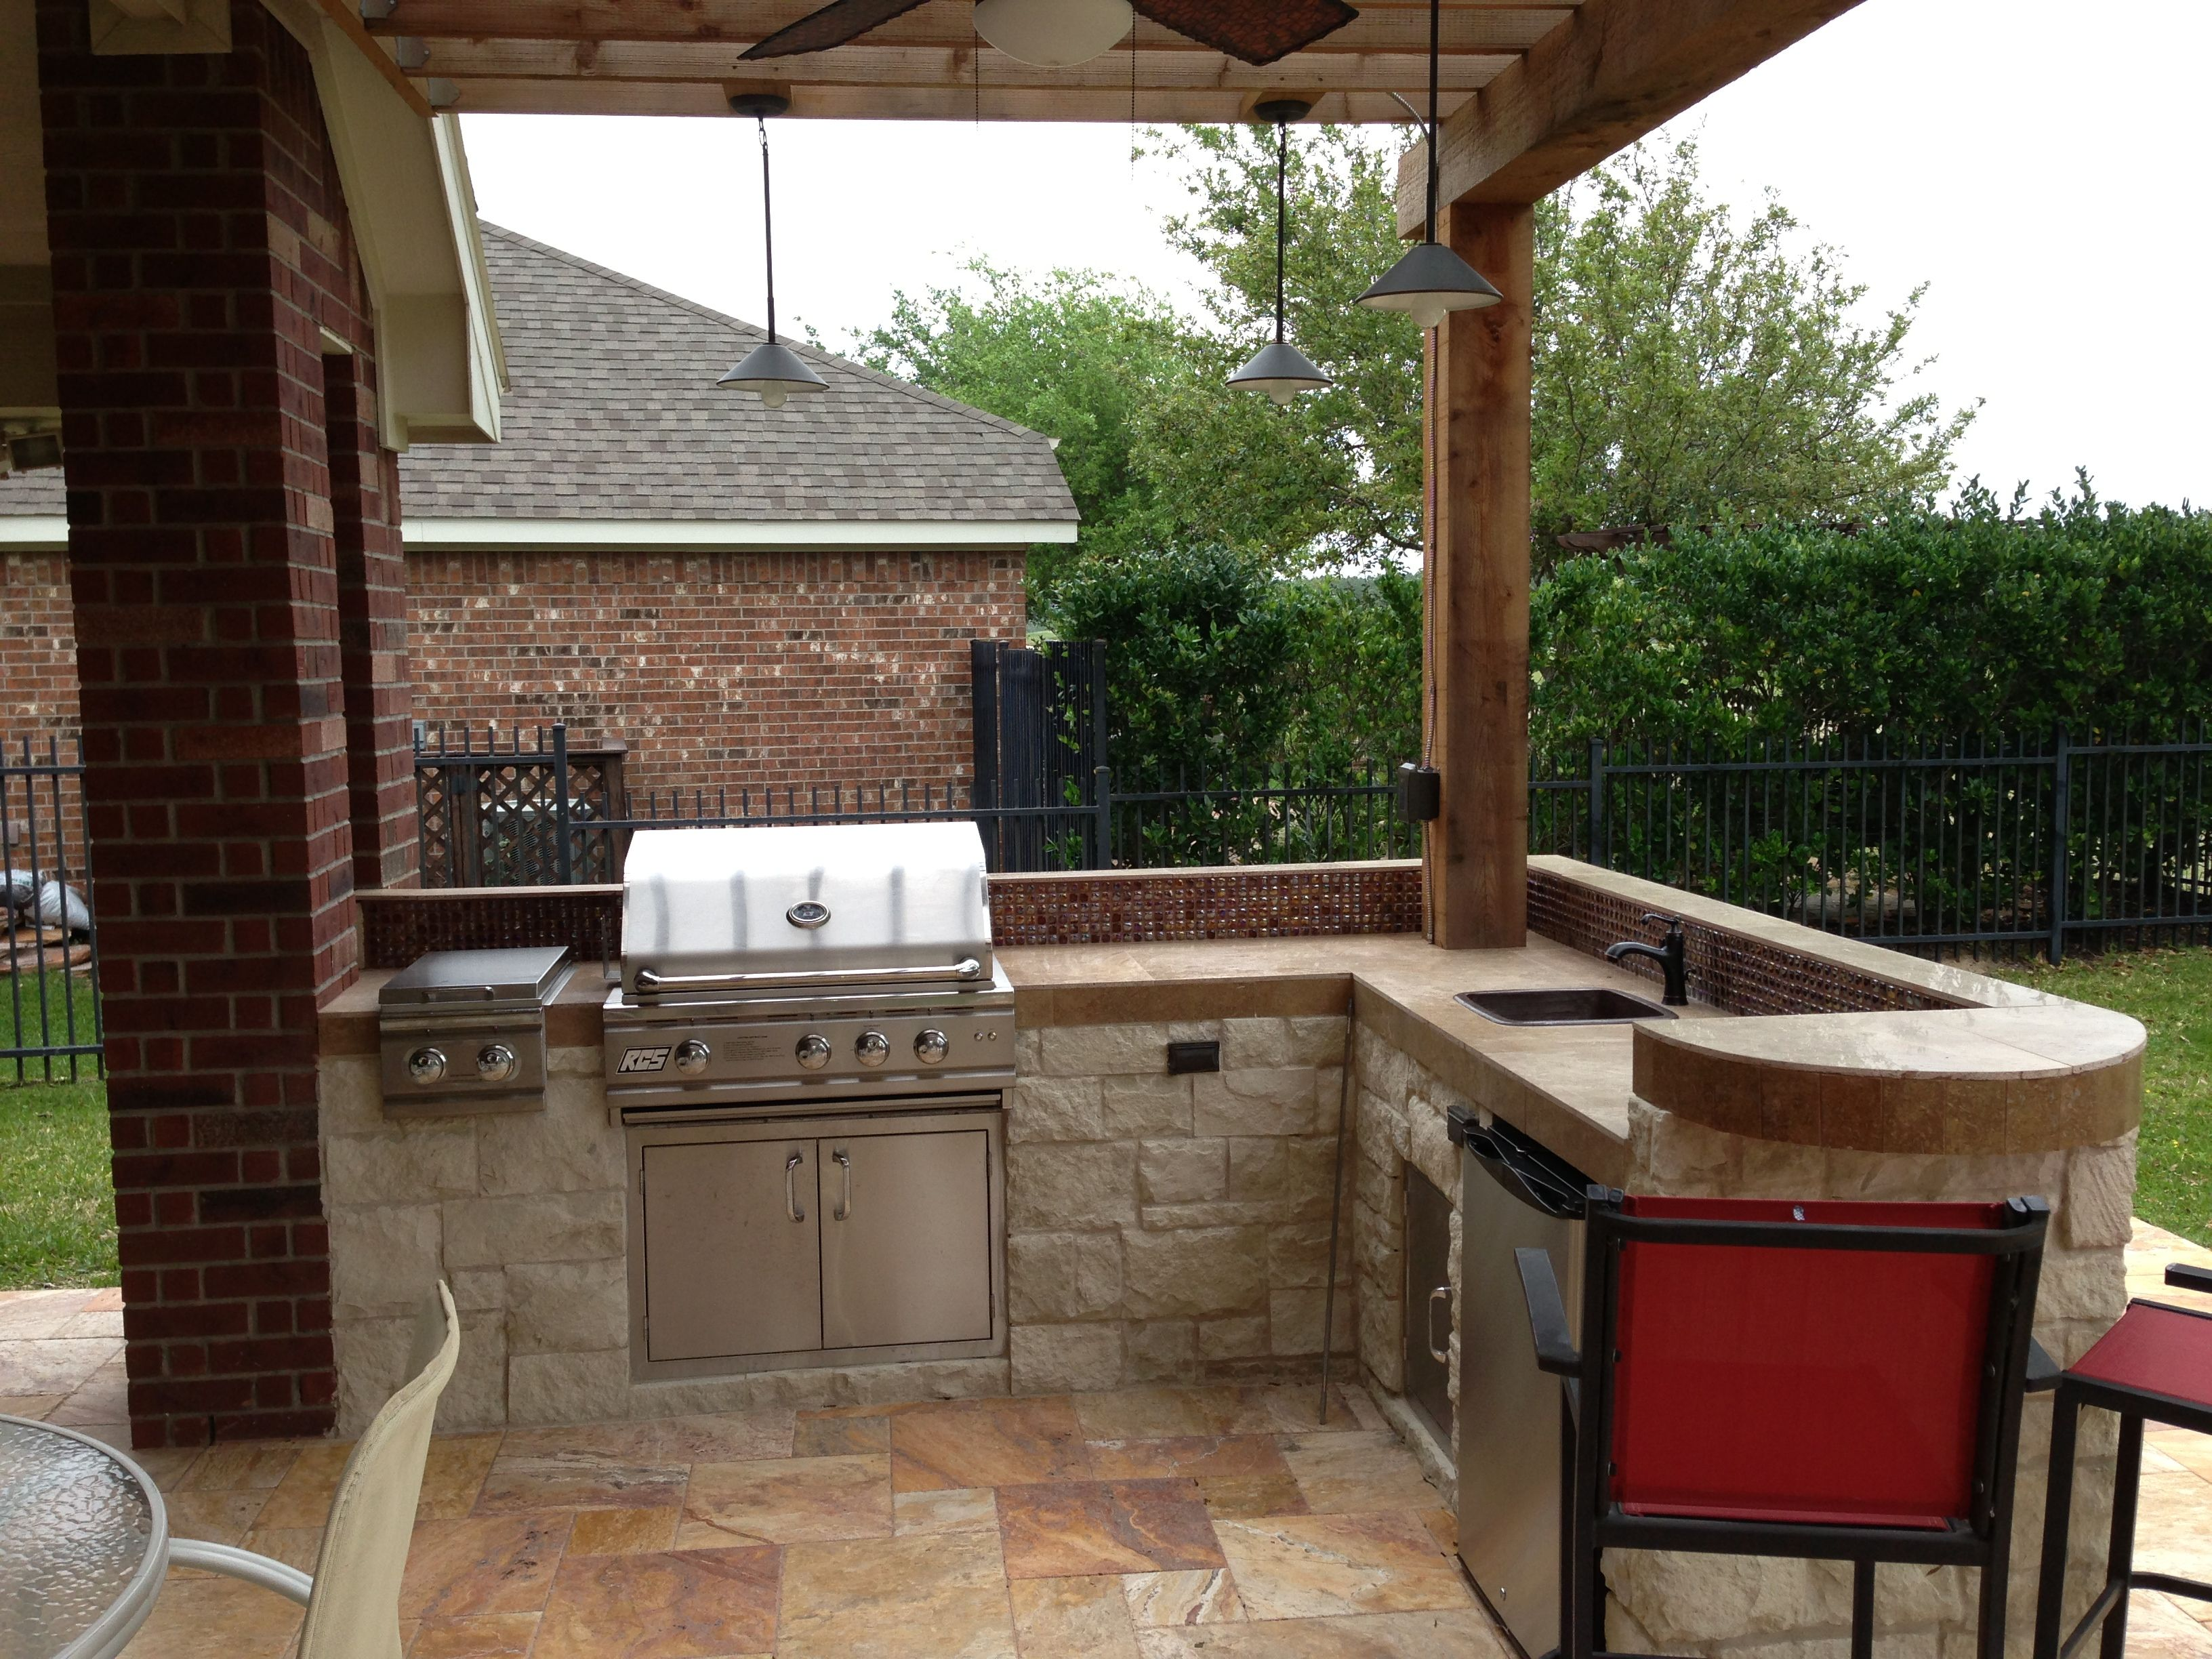 Small l shape outdoor kitchen with bar seating for Small backyard outdoor kitchen